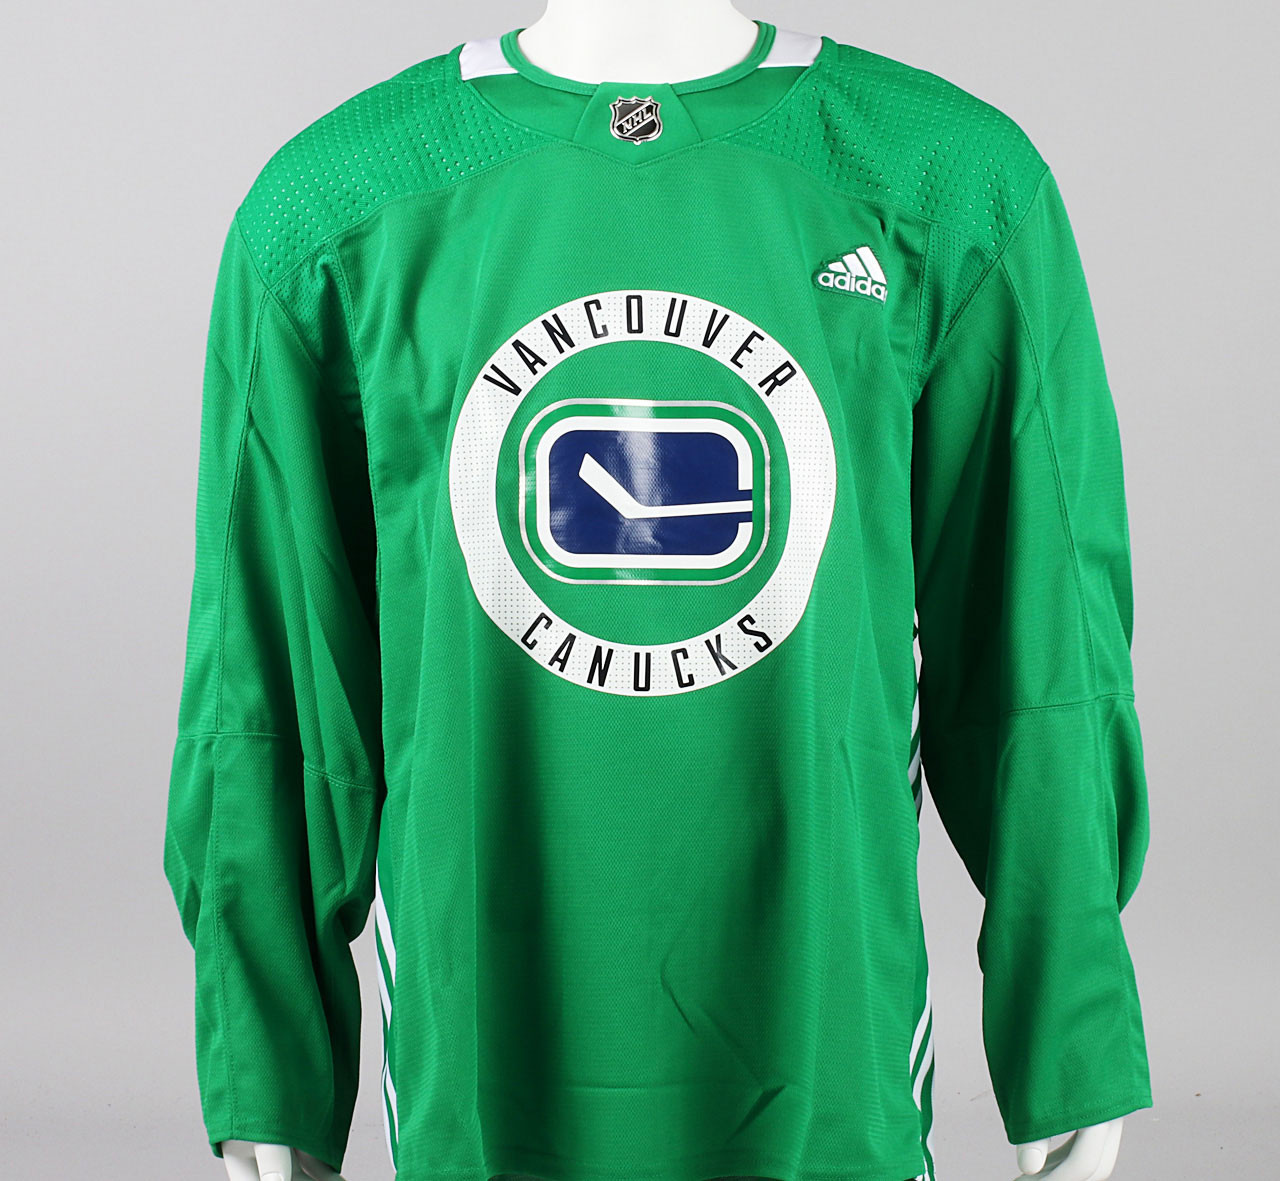 Practice Jersey - Vancouver Canucks - Green Adidas Size 58 - Pro ...